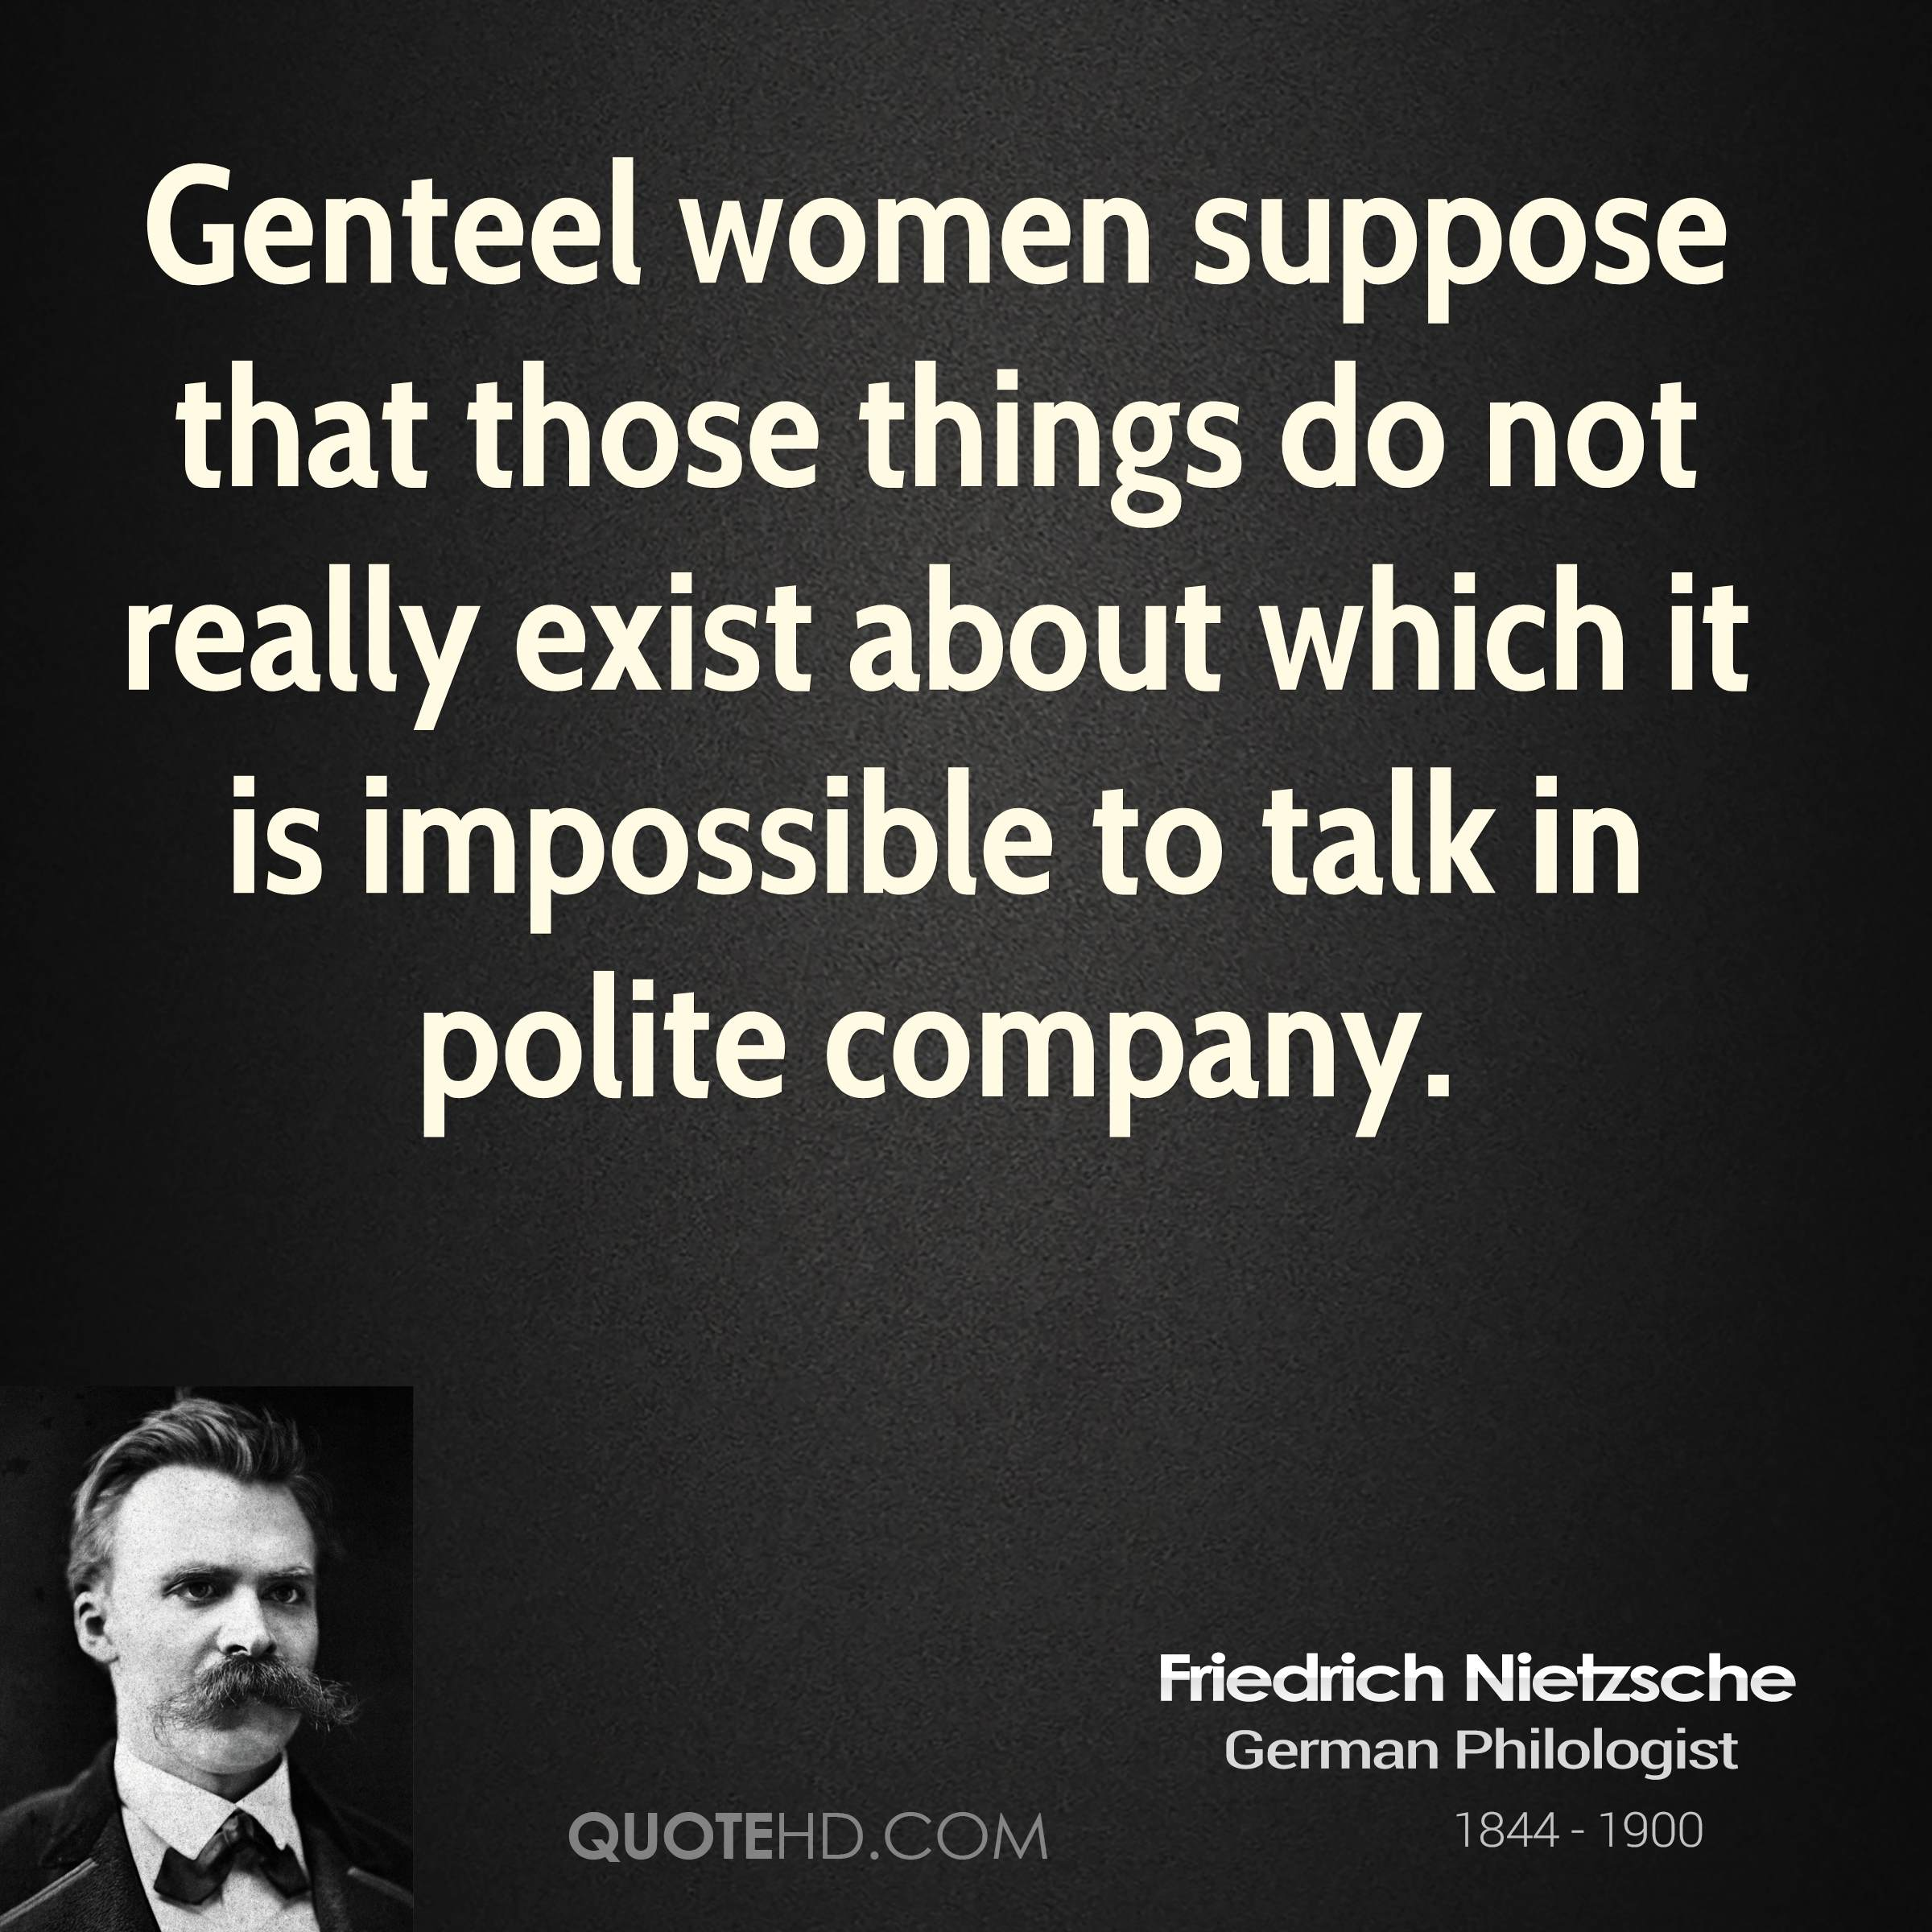 Genteel women suppose that those things do not really exist about which it is impossible to talk in polite company.